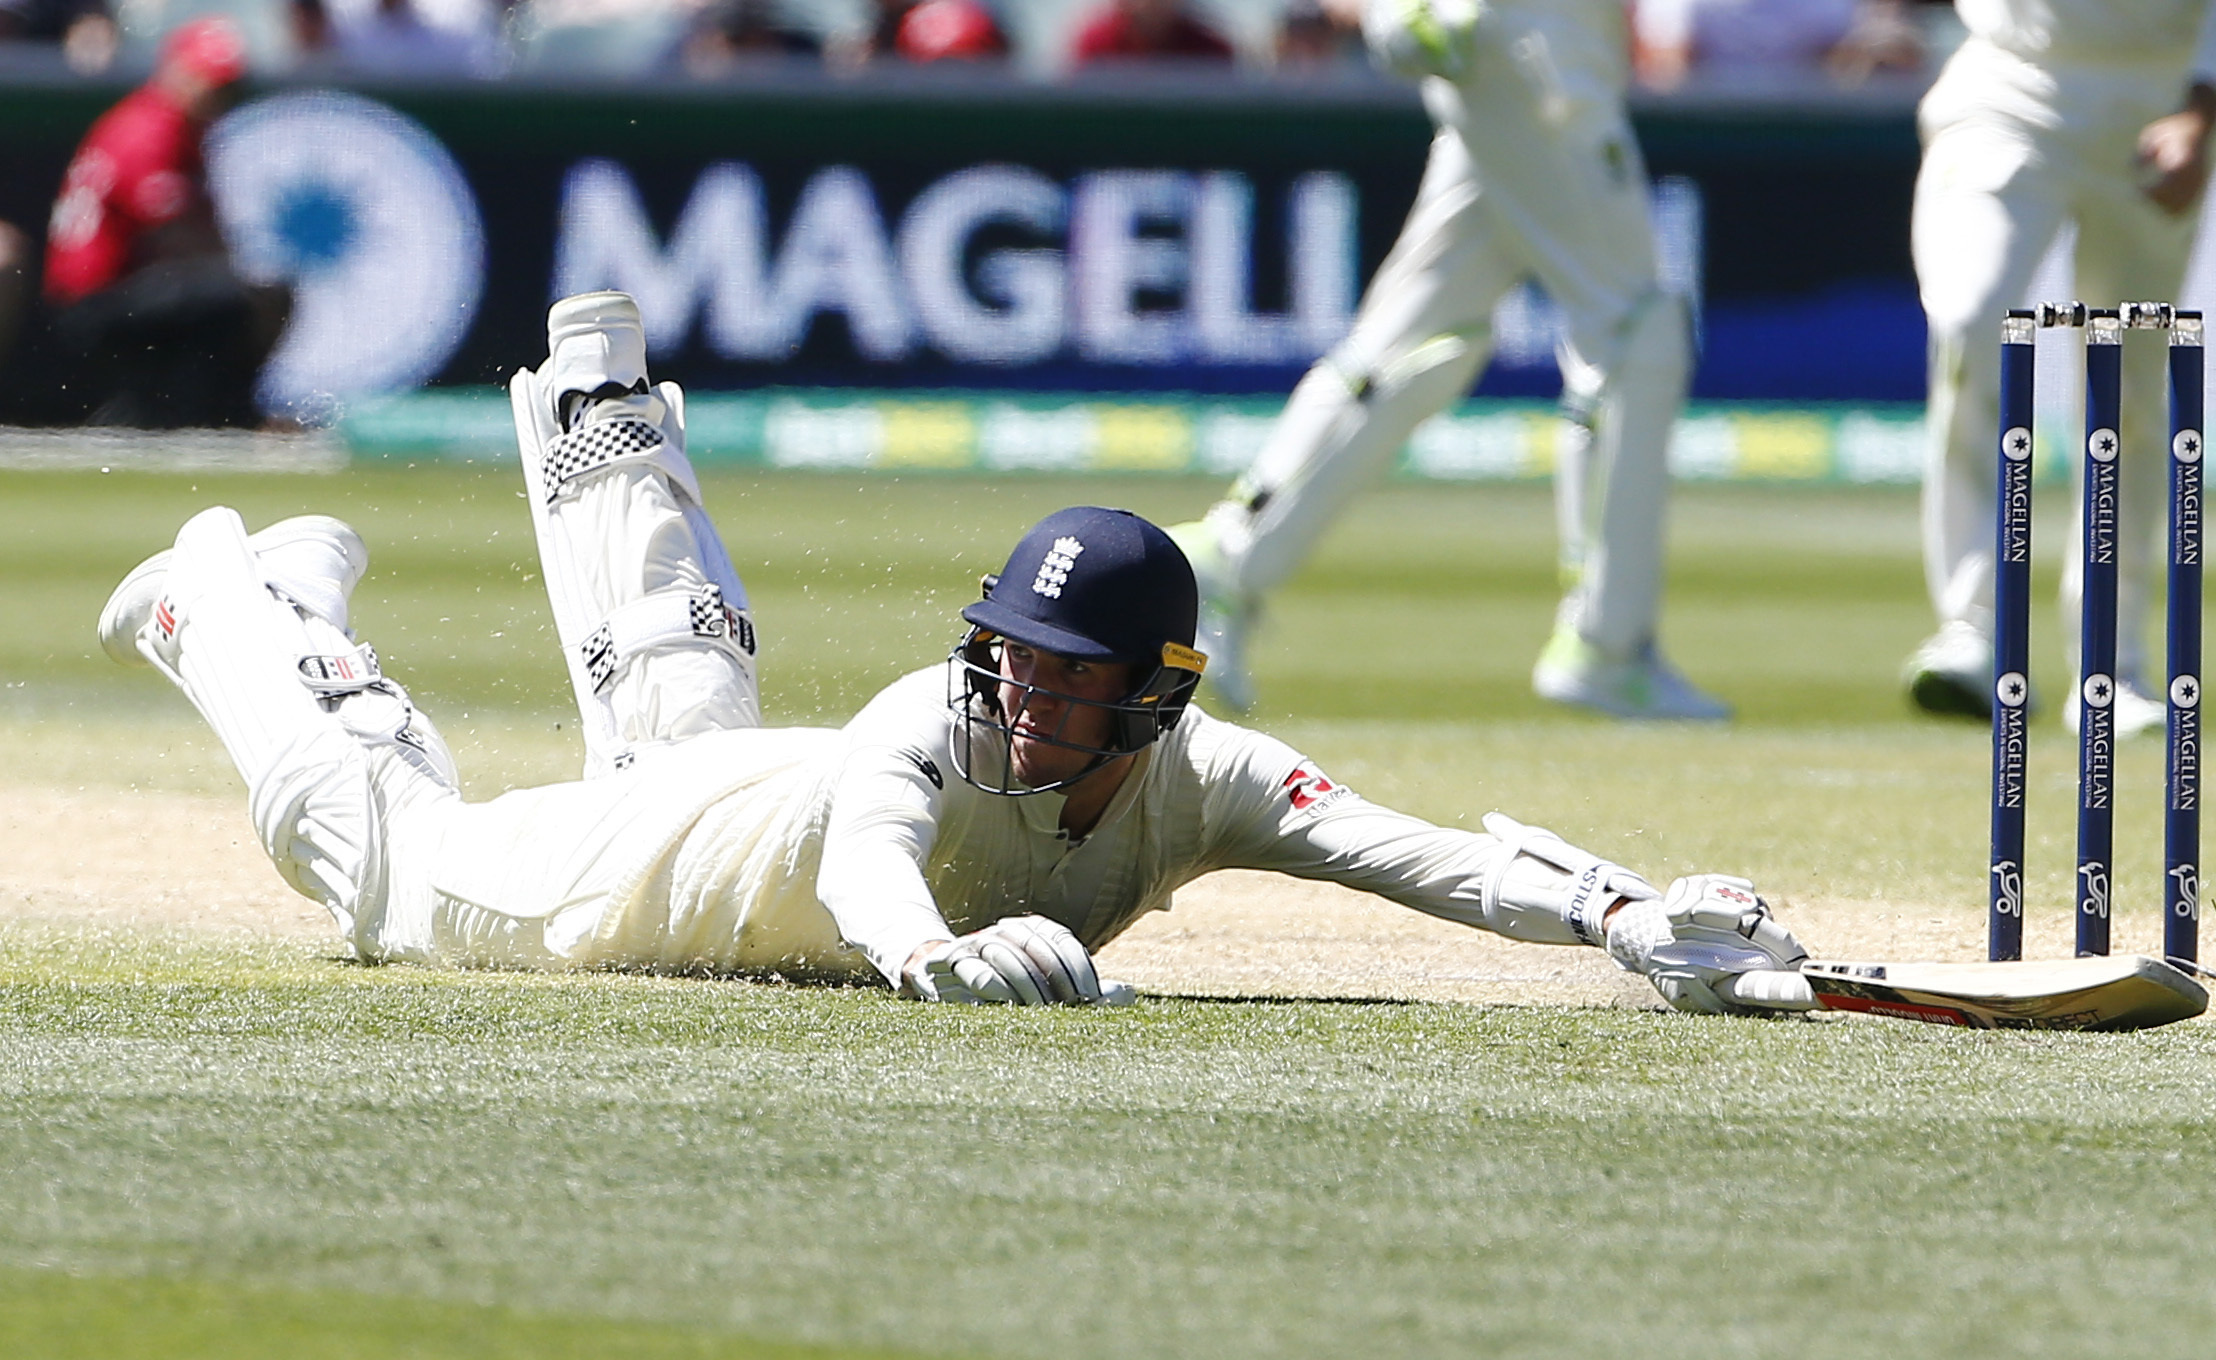 DOWN AND OUT: Craig Overton was out for 12 as England lost the third Ashes Test in Perth. Pic: PA Wire